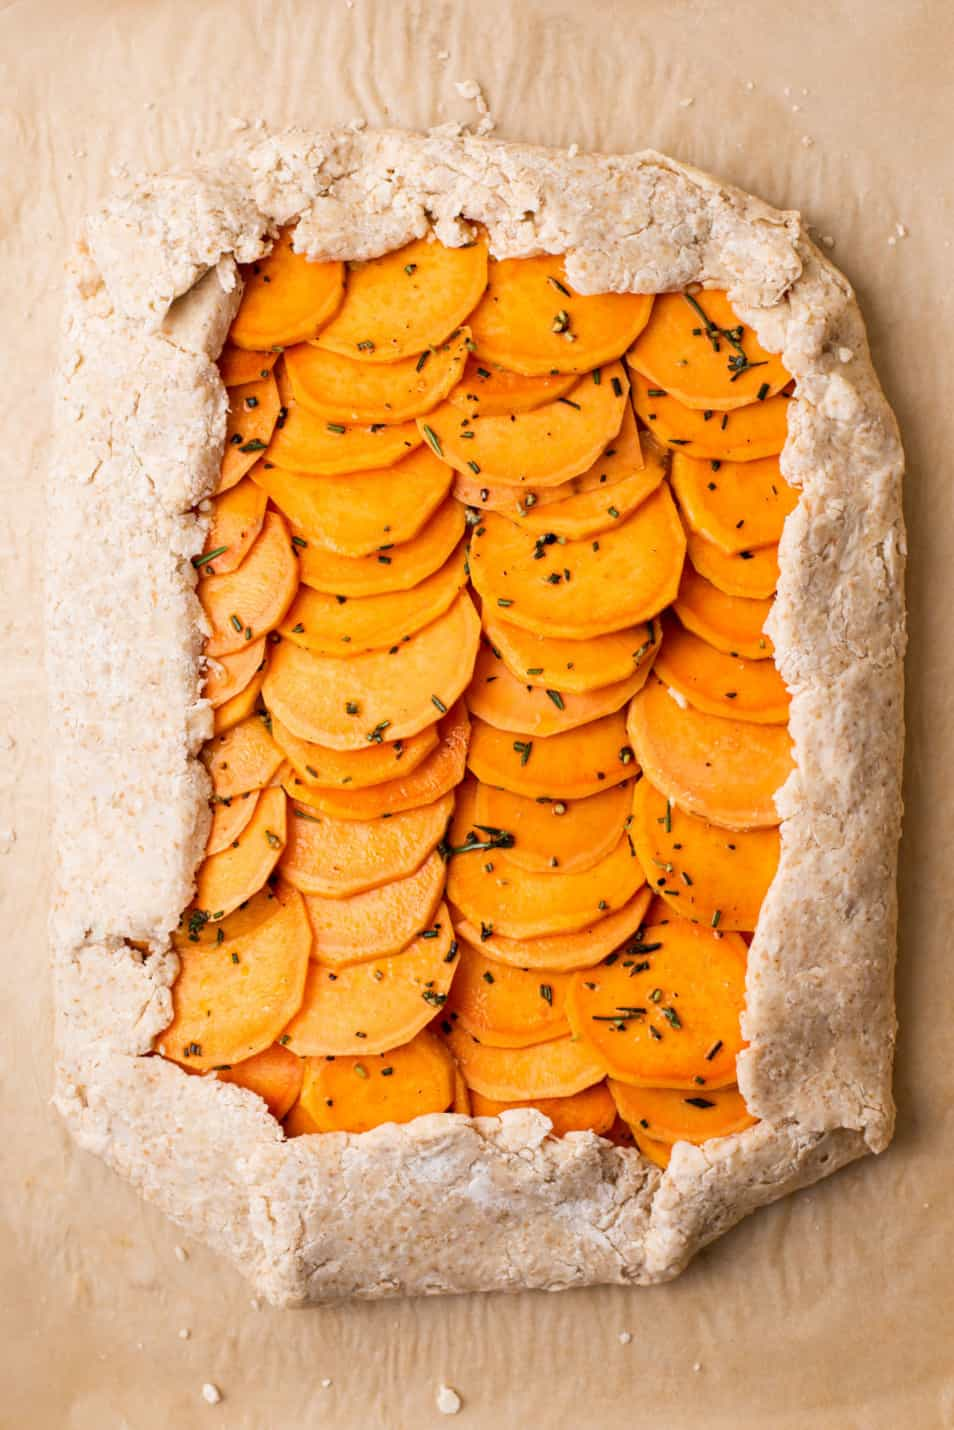 Raw sweet potato galette on brown parchment paper, ready to bake